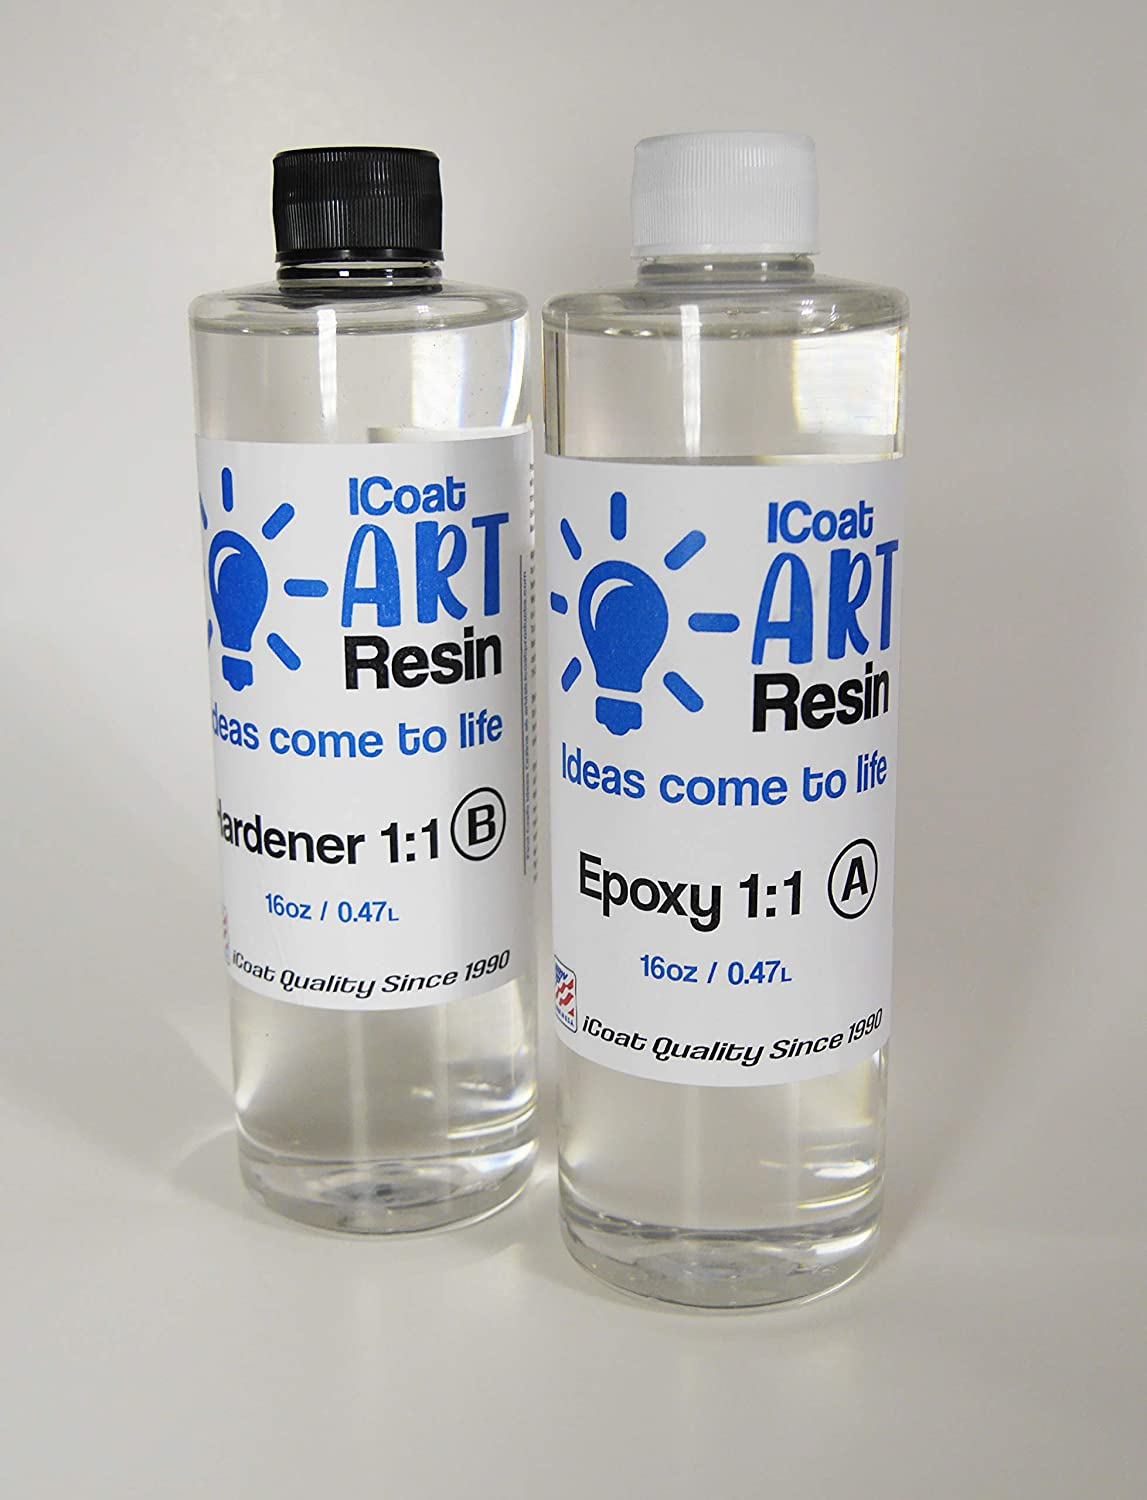 iCoat Art Resin 1qt kit Crystal Clear, Non-Toxic, Epoxy and Hardener 1:1